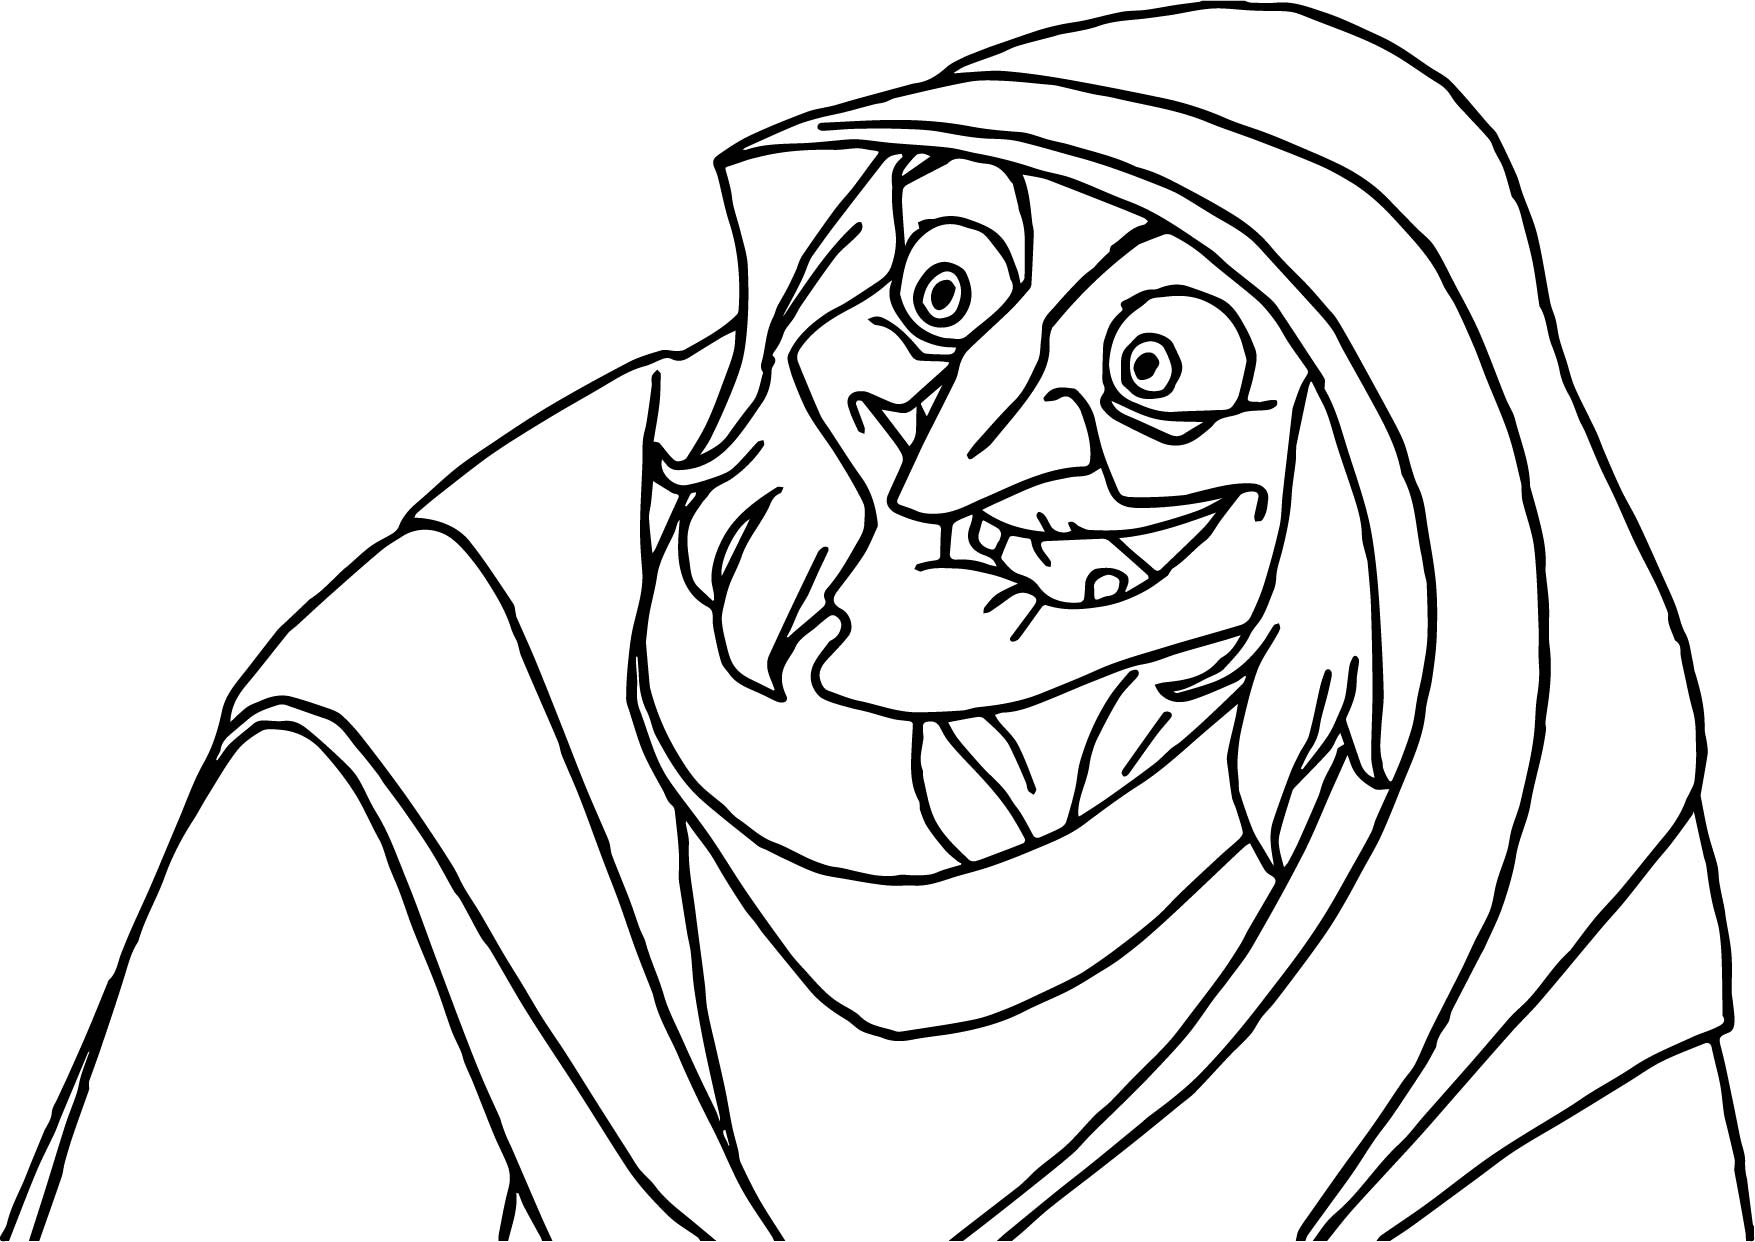 Old Woman Coloring Page